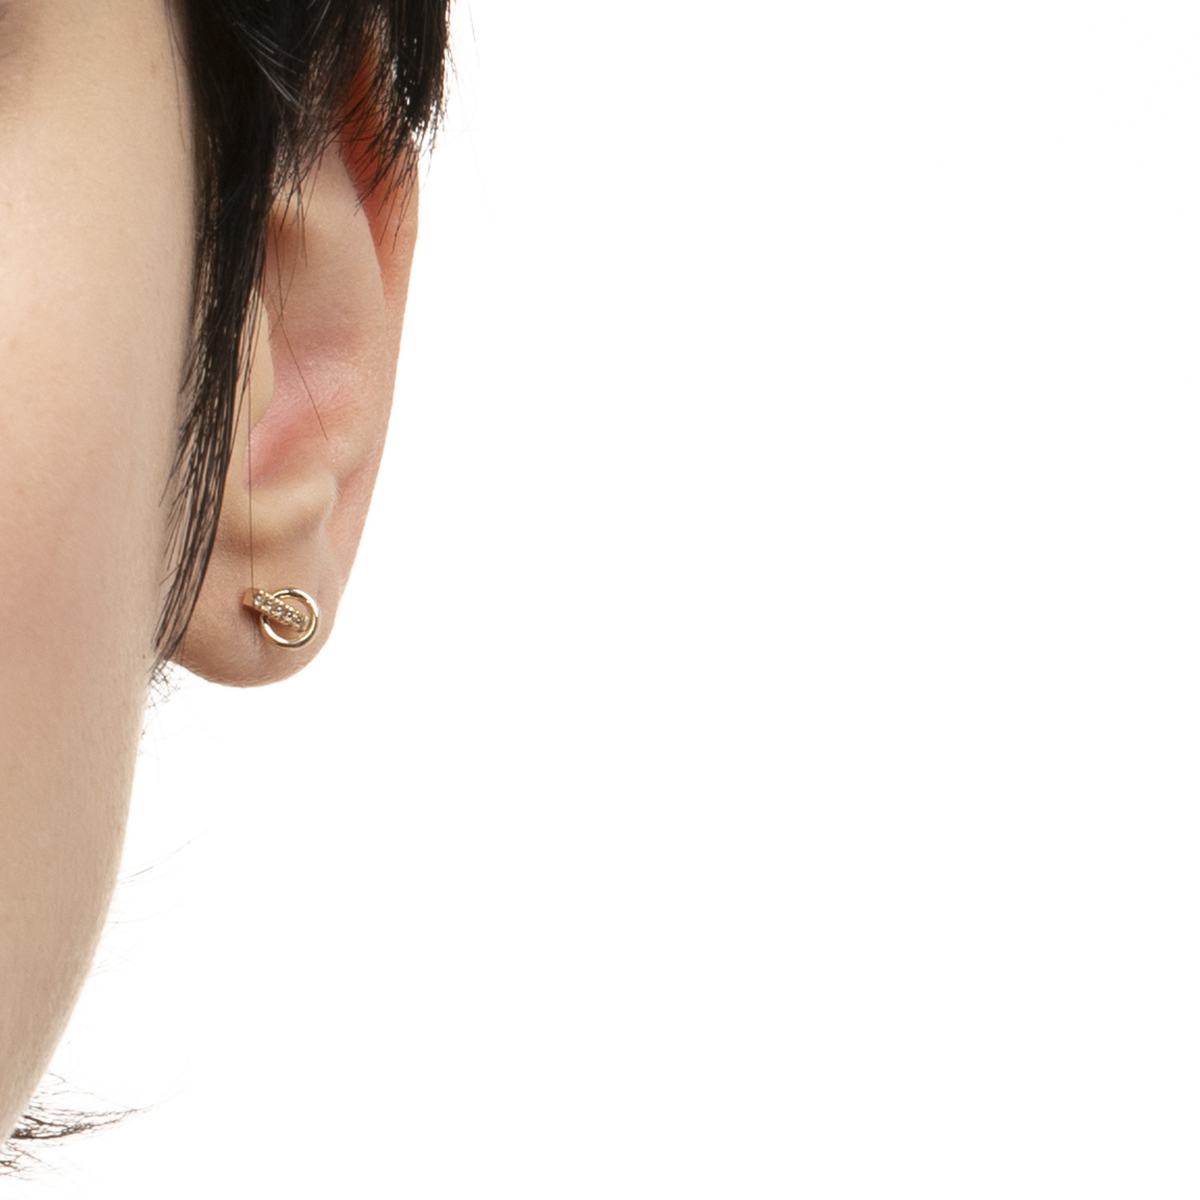 Deco Small Diamond Earring With Small Hoop GS13KDE ピアス ダイヤモンド 片耳 K10